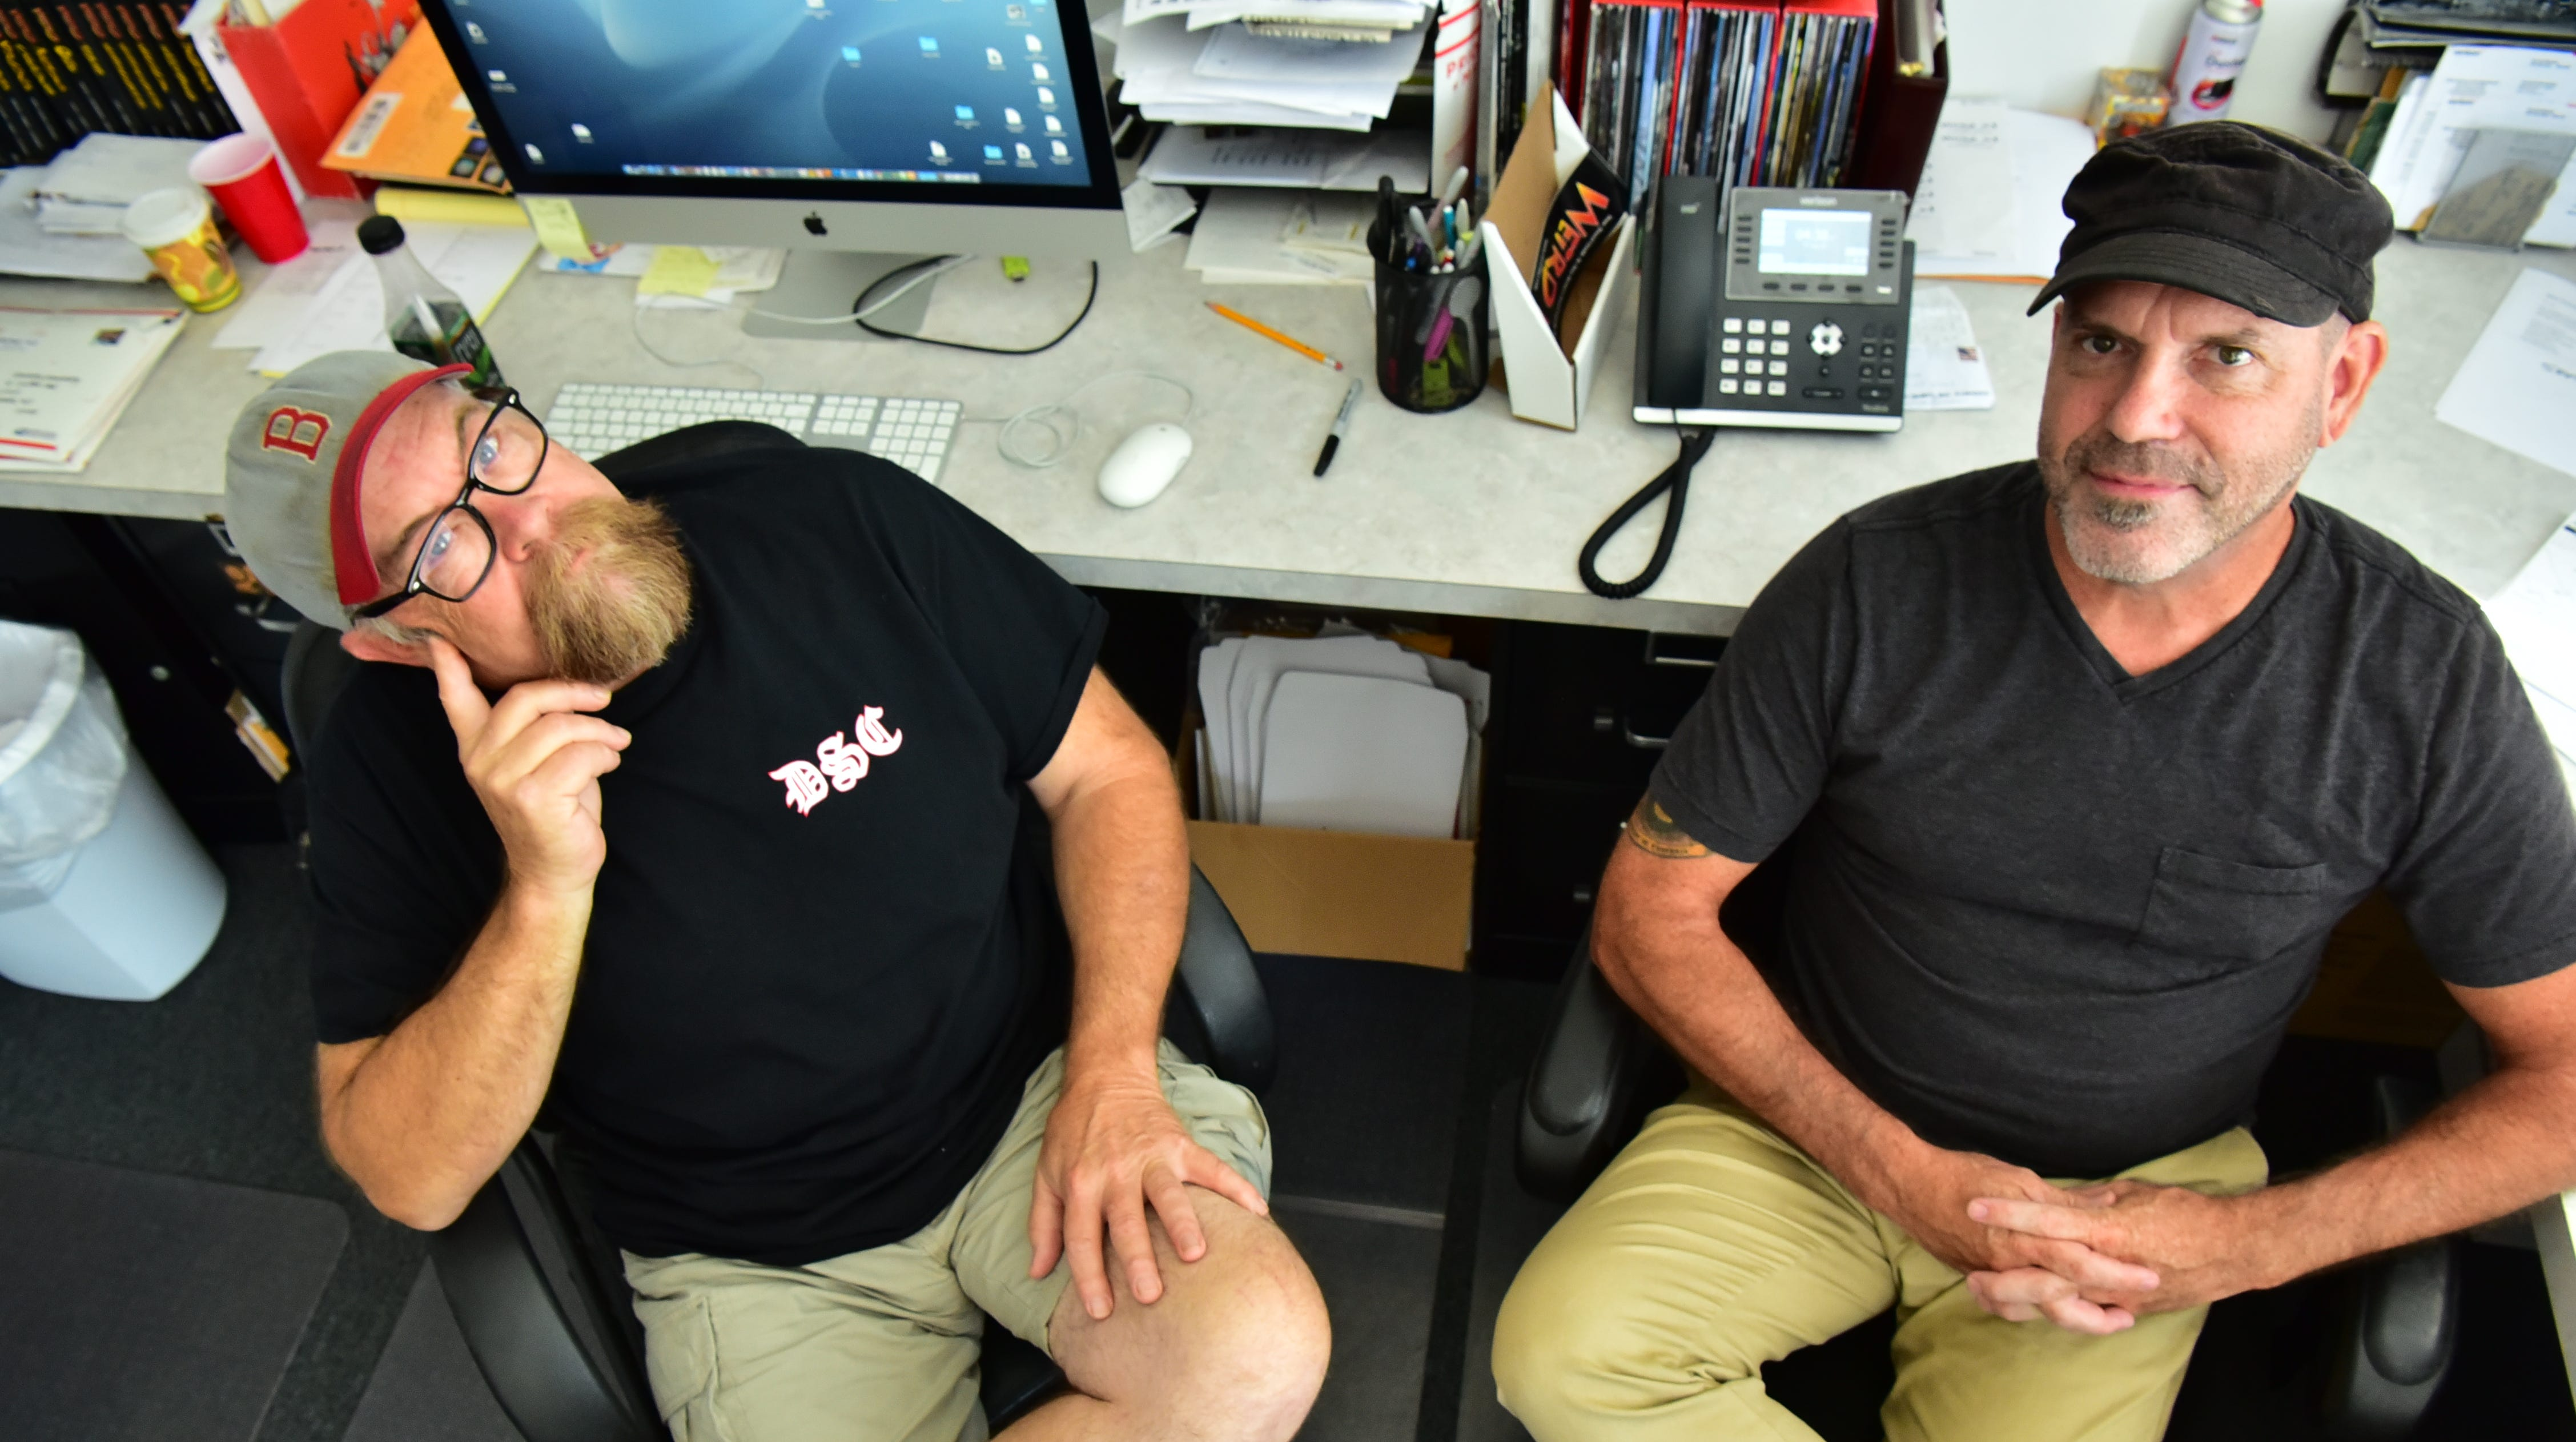 When the going got weird, these guys kept going. Five questions with Weird New Jersey co-founders Mark Sceurman and Mark Moran as the mag turns 25.